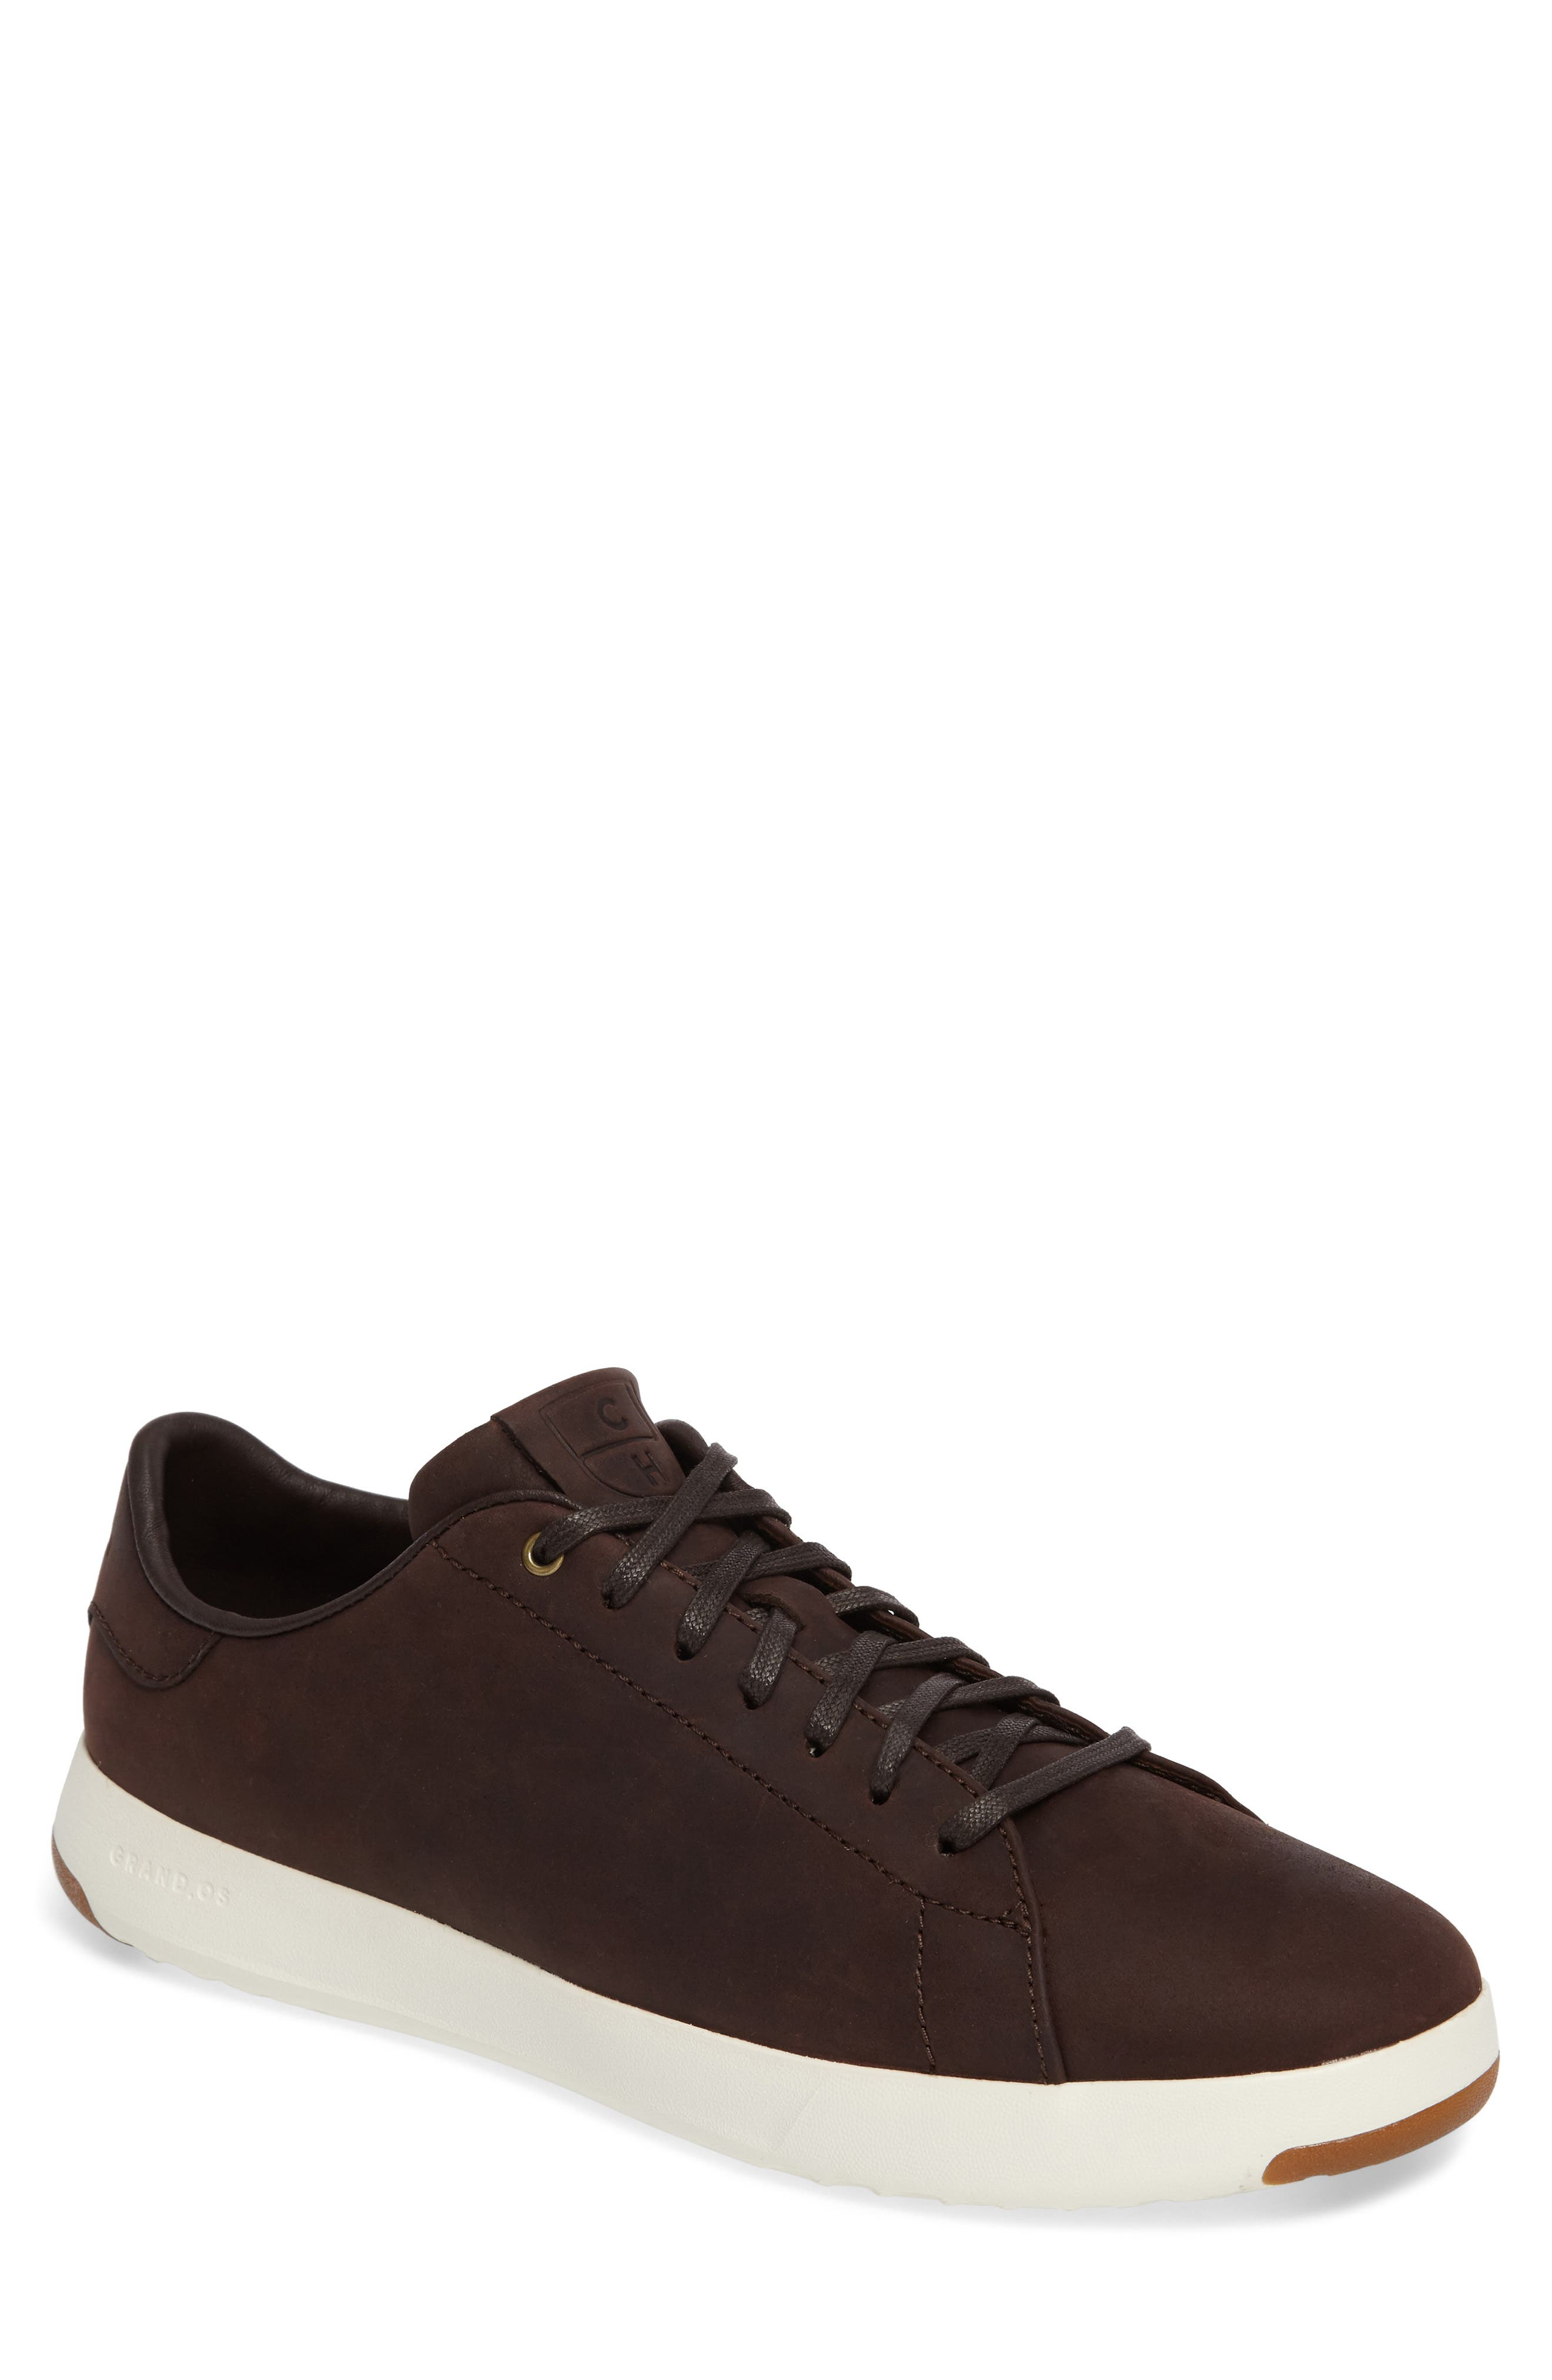 GrandPro Tennis Sneaker,                         Main,                         color, Java Leather